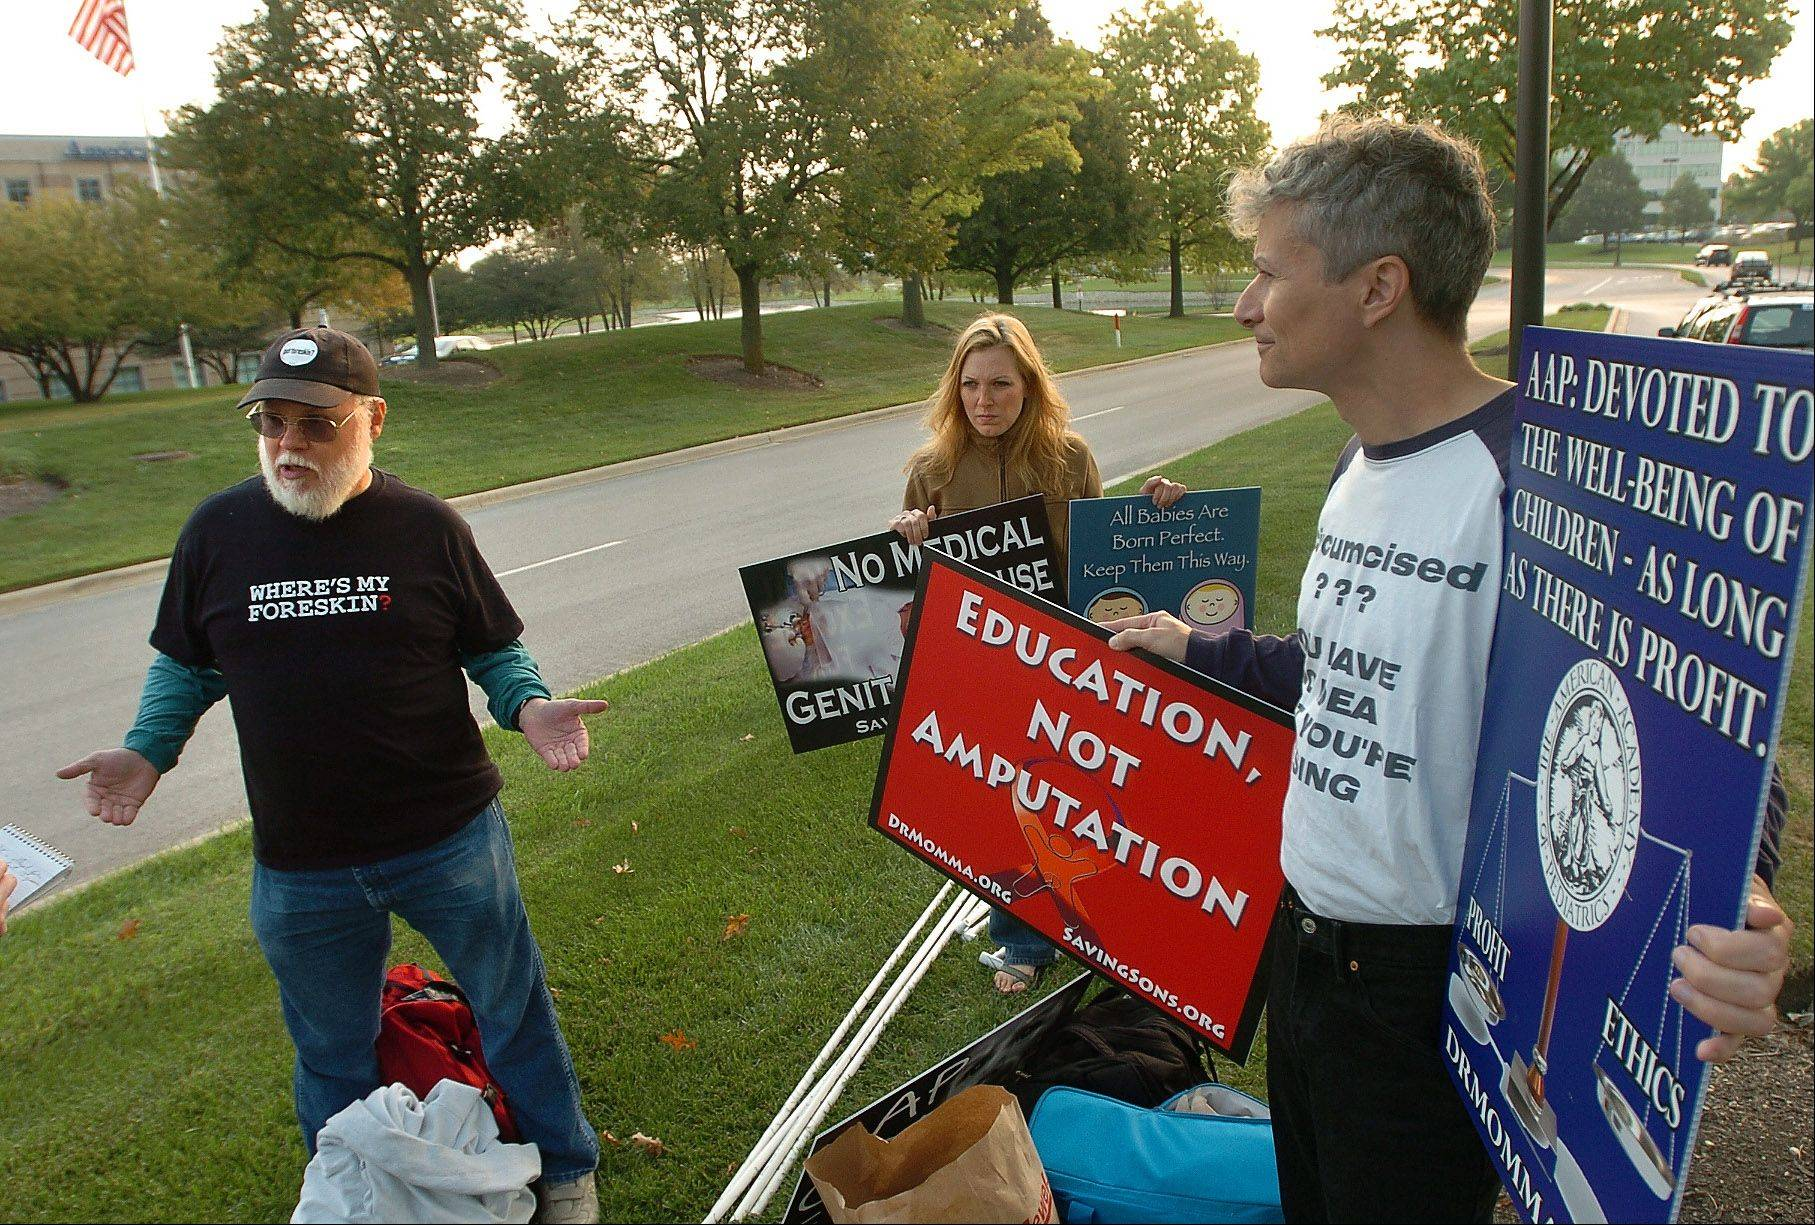 From left, Dan Strandjord, Erica Wijenayaka and Ron Low, were among a group protesting the American Academy of Pediatrics� stance on circumcision at the association�s Elk Grove Village headquarters Monday morning.